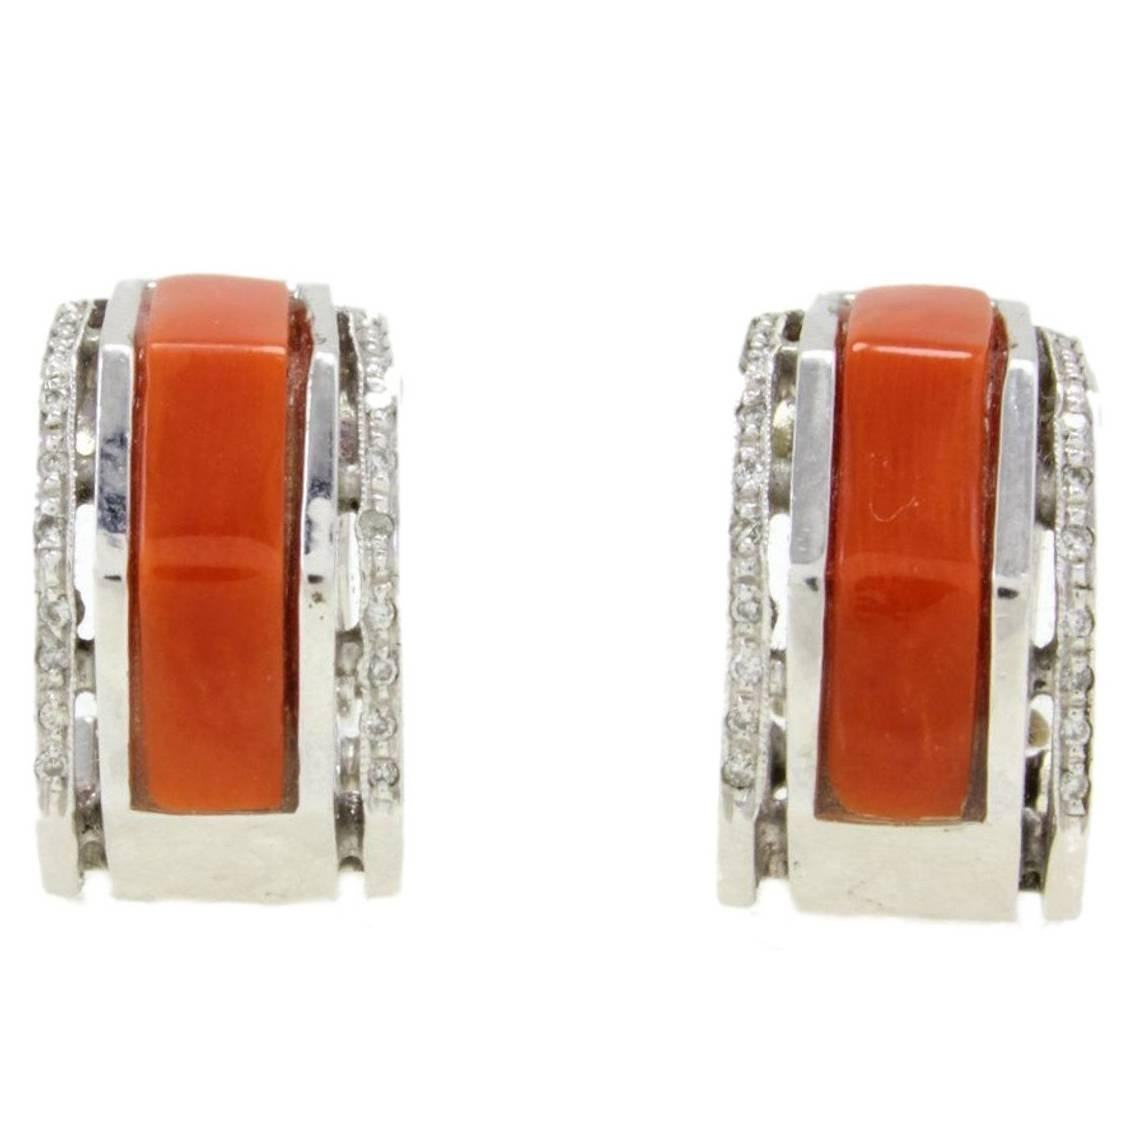 White Diamonds, Red Coral, 14K White Gold Clip-on Earrings